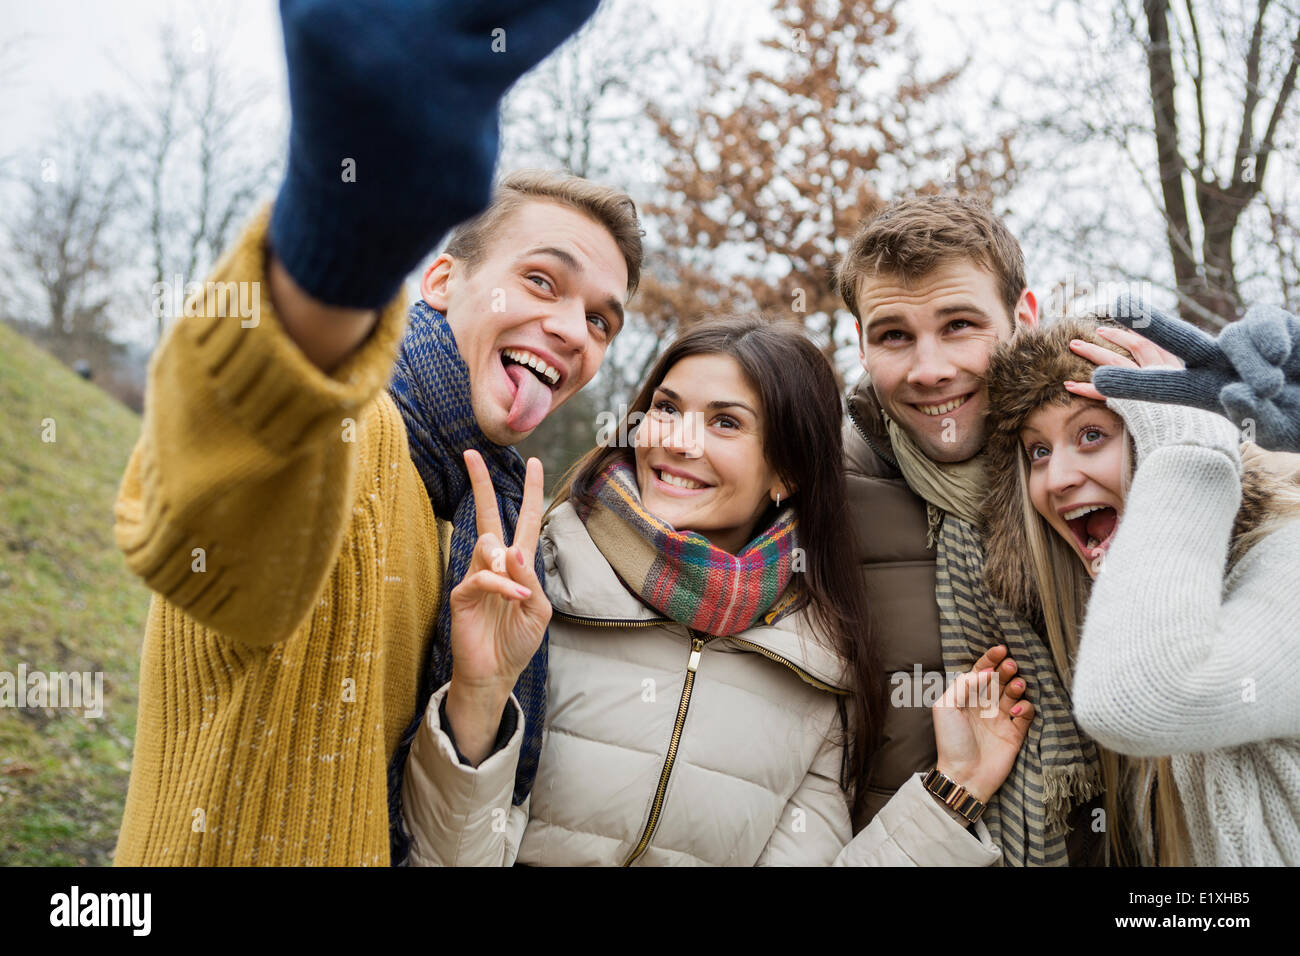 Playful couples gesturing while taking self portrait in park - Stock Image